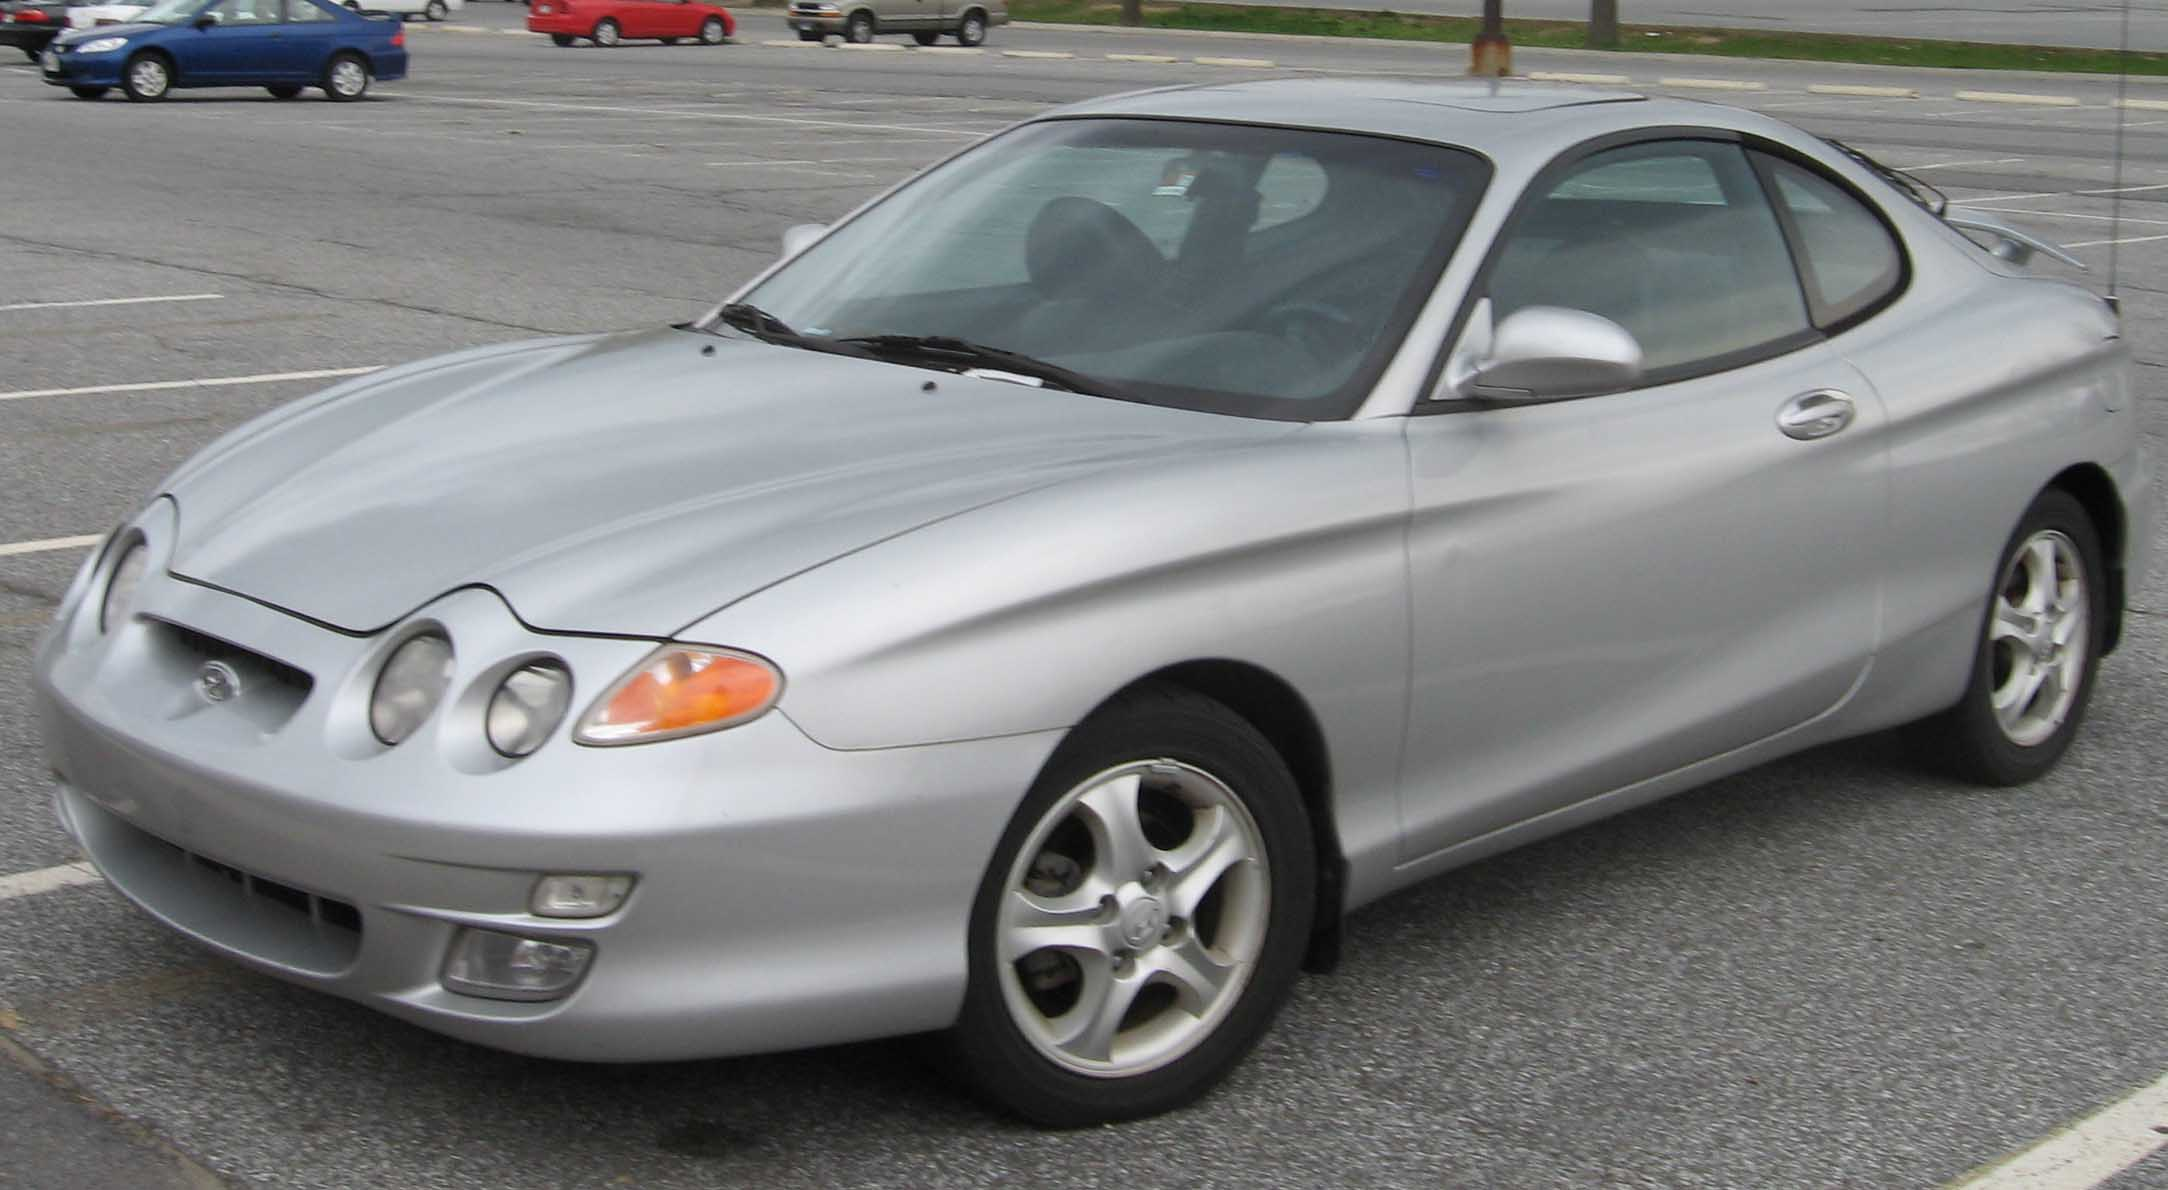 hyundai tiburon 2002 review amazing pictures and images look at the car hyundai tiburon 2002 review amazing